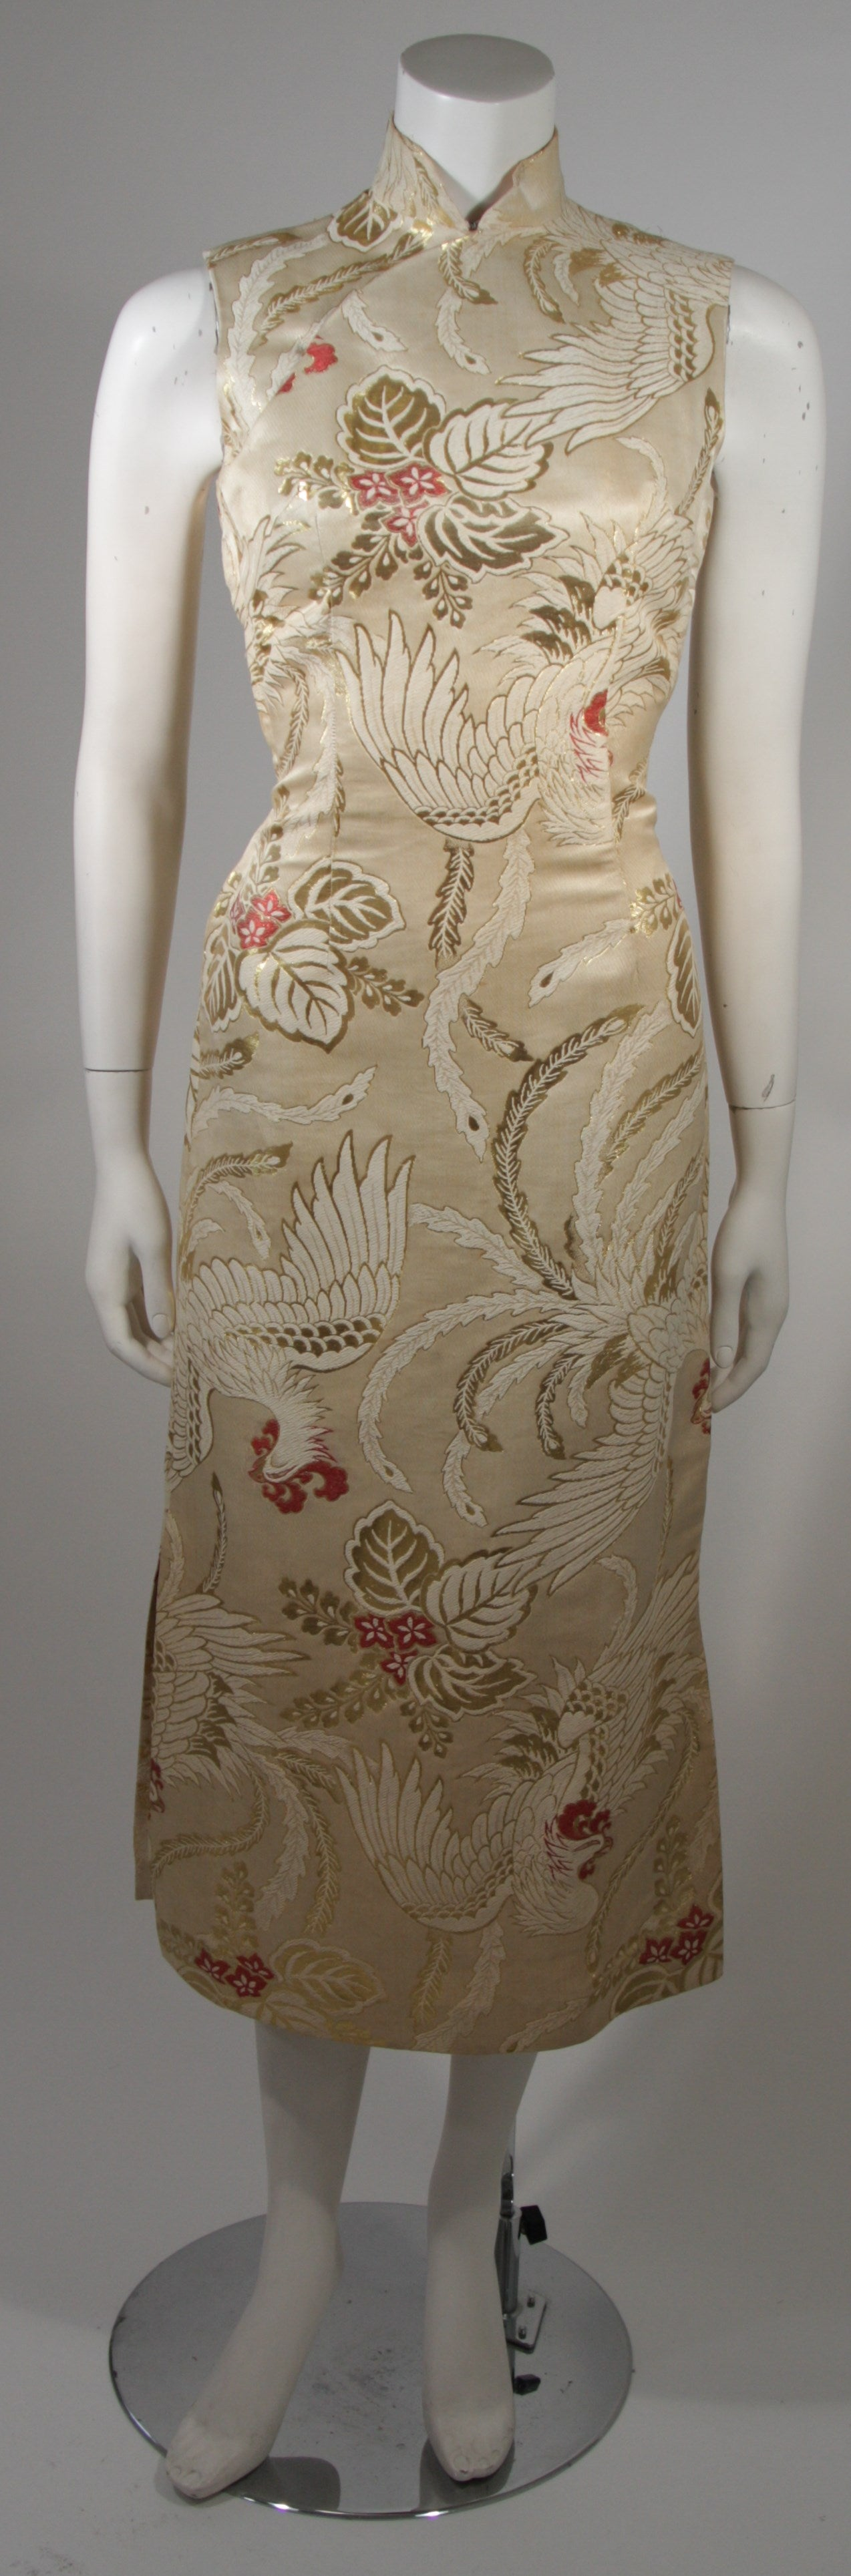 This custom made 1950's cocktail dress is composed of an ivory, cream, and gold Brocade silk with red accents. The dress features a Phoenix pattern. There is a metal side zipper closure and Mandarin neckline and side slits for ease of